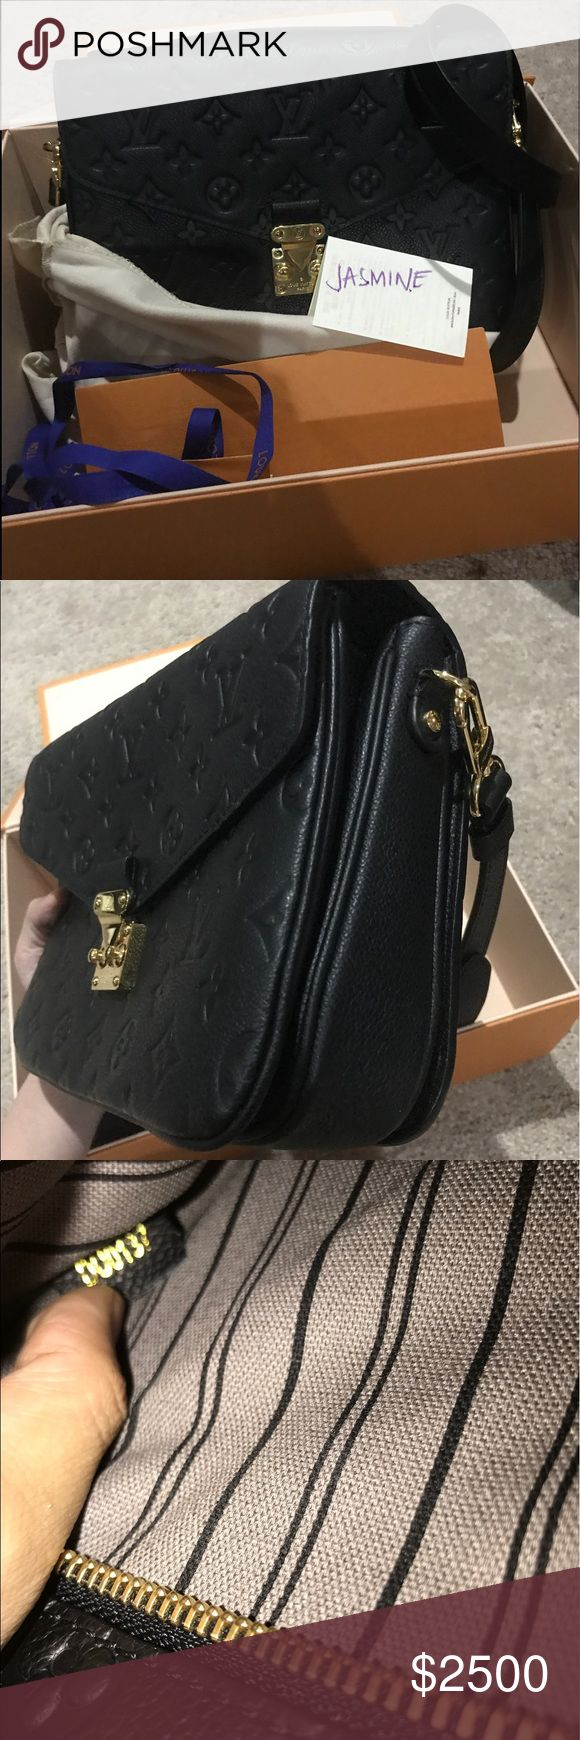 Authentic pochette metis empreinte Brandnew condition pochette metis comes with box, dust bag. Can Trade to pochette metis monogram. Siena Pm pp cash. Neo noe. Speedy b 25 DE Louis Vuitton Bags Crossbody Bags